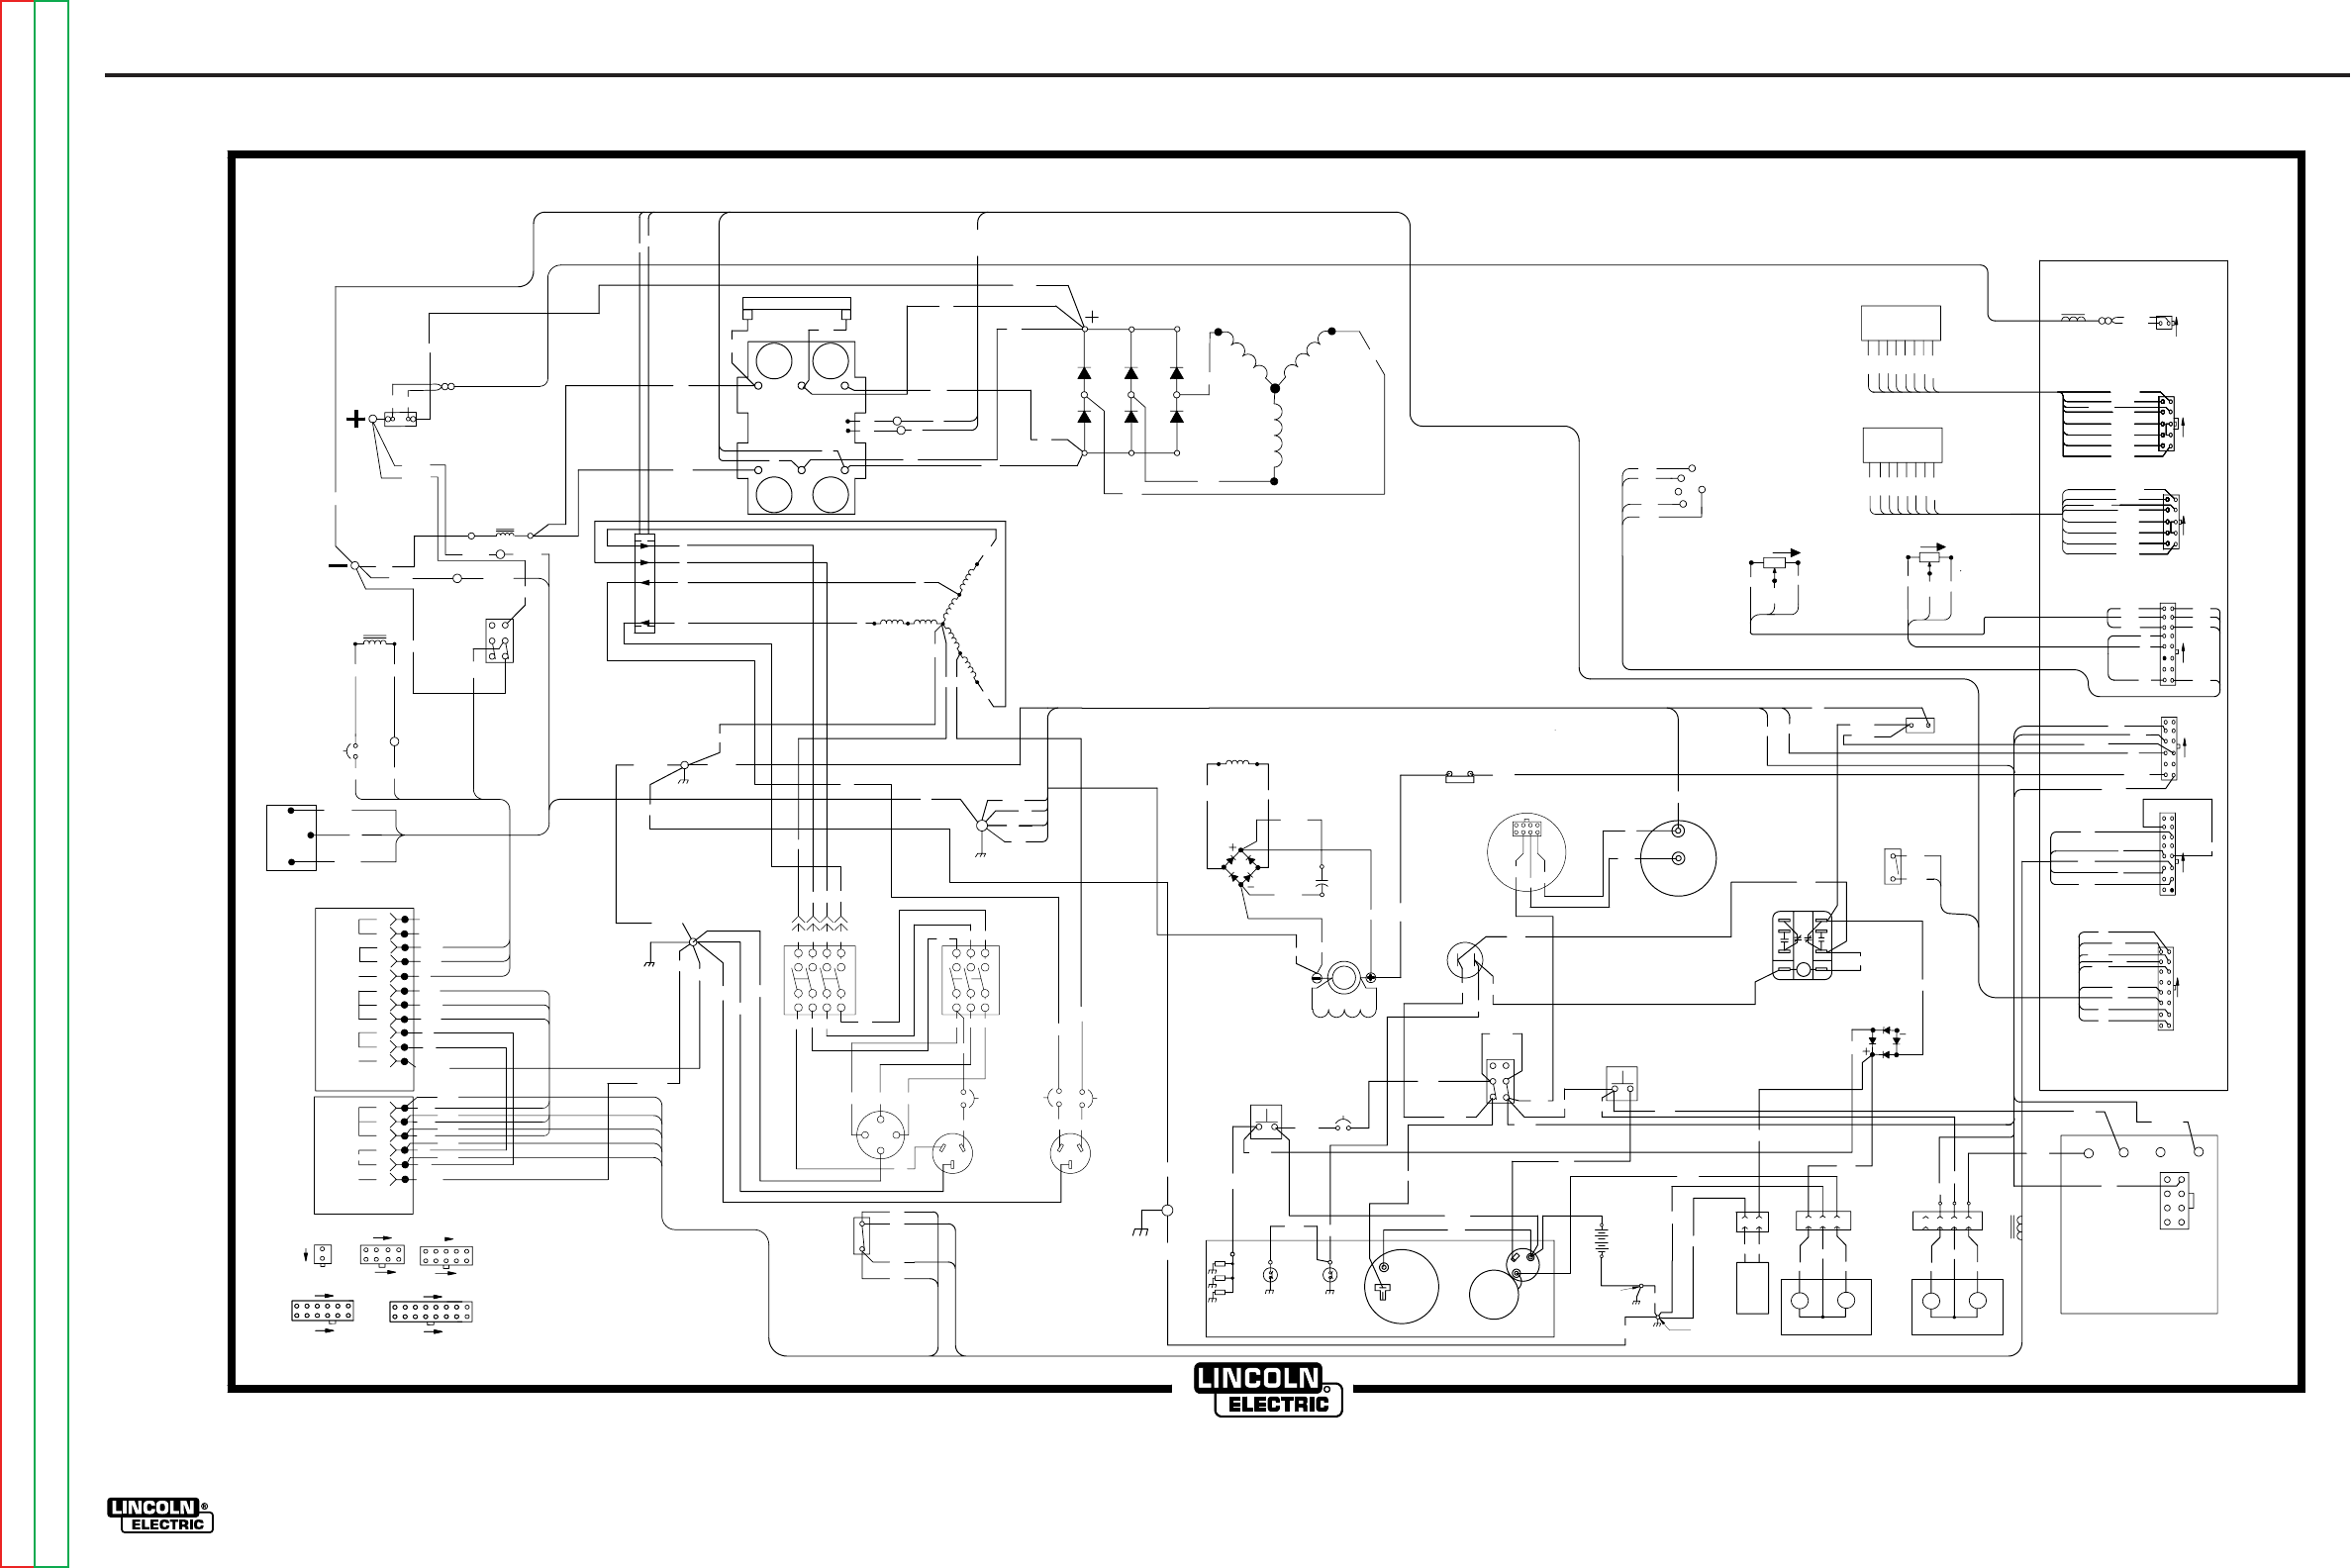 lincoln ranger wiring diagram lincoln diy wiring diagrams description lincoln ranger 305d wiring diagram lincoln printable wiring